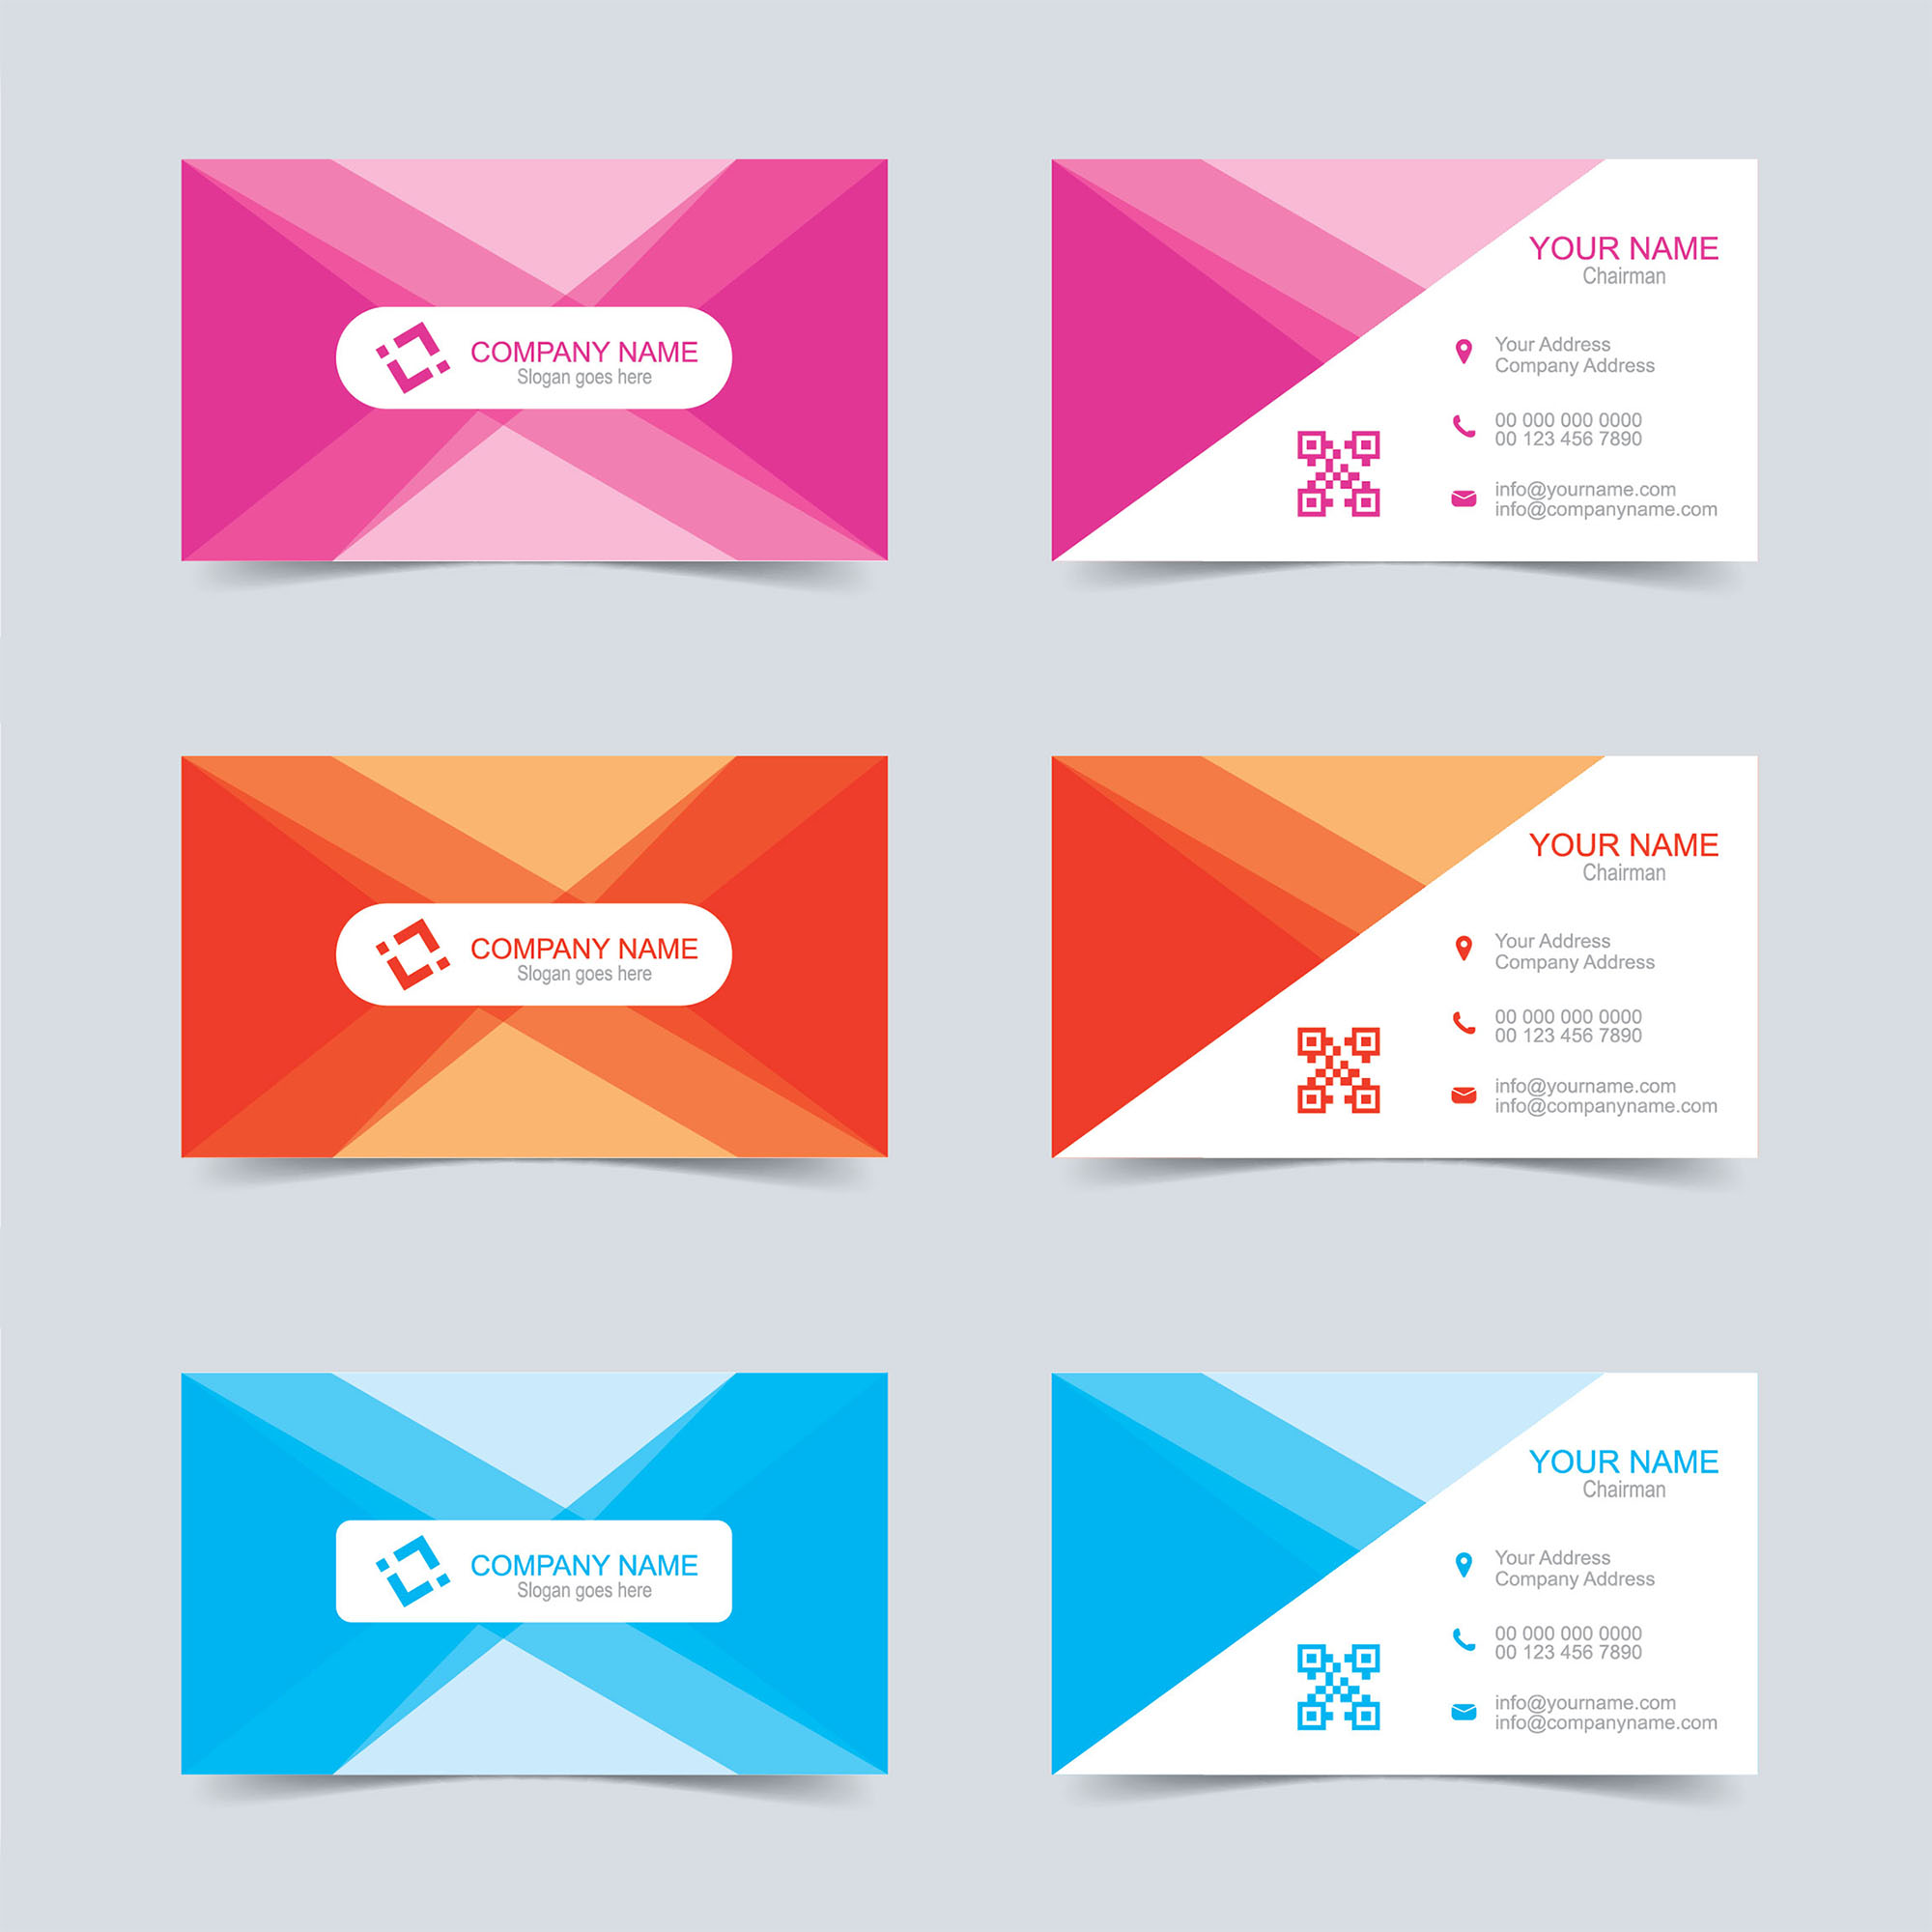 Vector business card template free download wisxi business card business cards business card design business card template design templates flashek